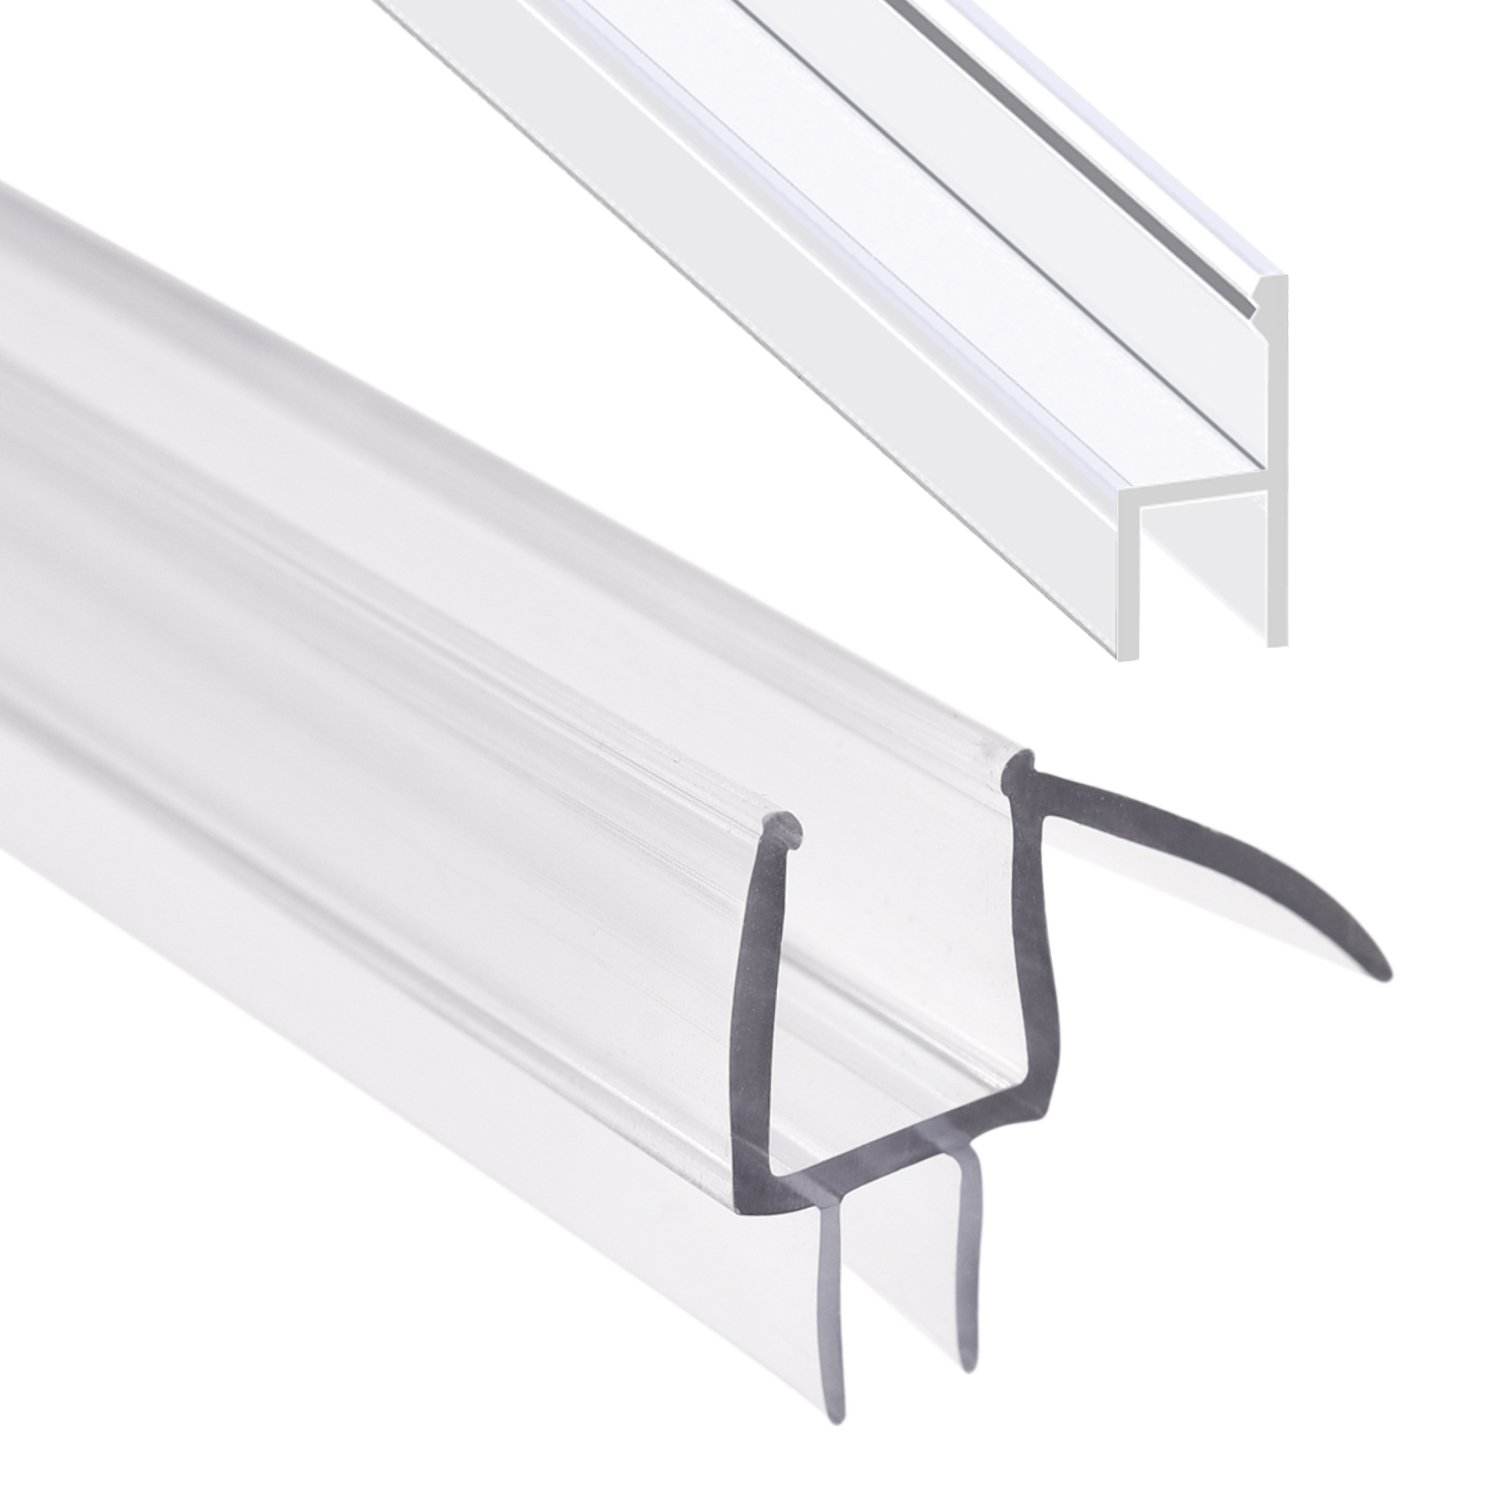 Shower Door Sweep, Frameless Glass Shower Weather Stripping for Door Bottom-36 Inch Length M-3/8 inch + 72 Inch Length H-3/8 inch (3/8 inch(10mm), M+h-Type) by MAGZO (Image #1)